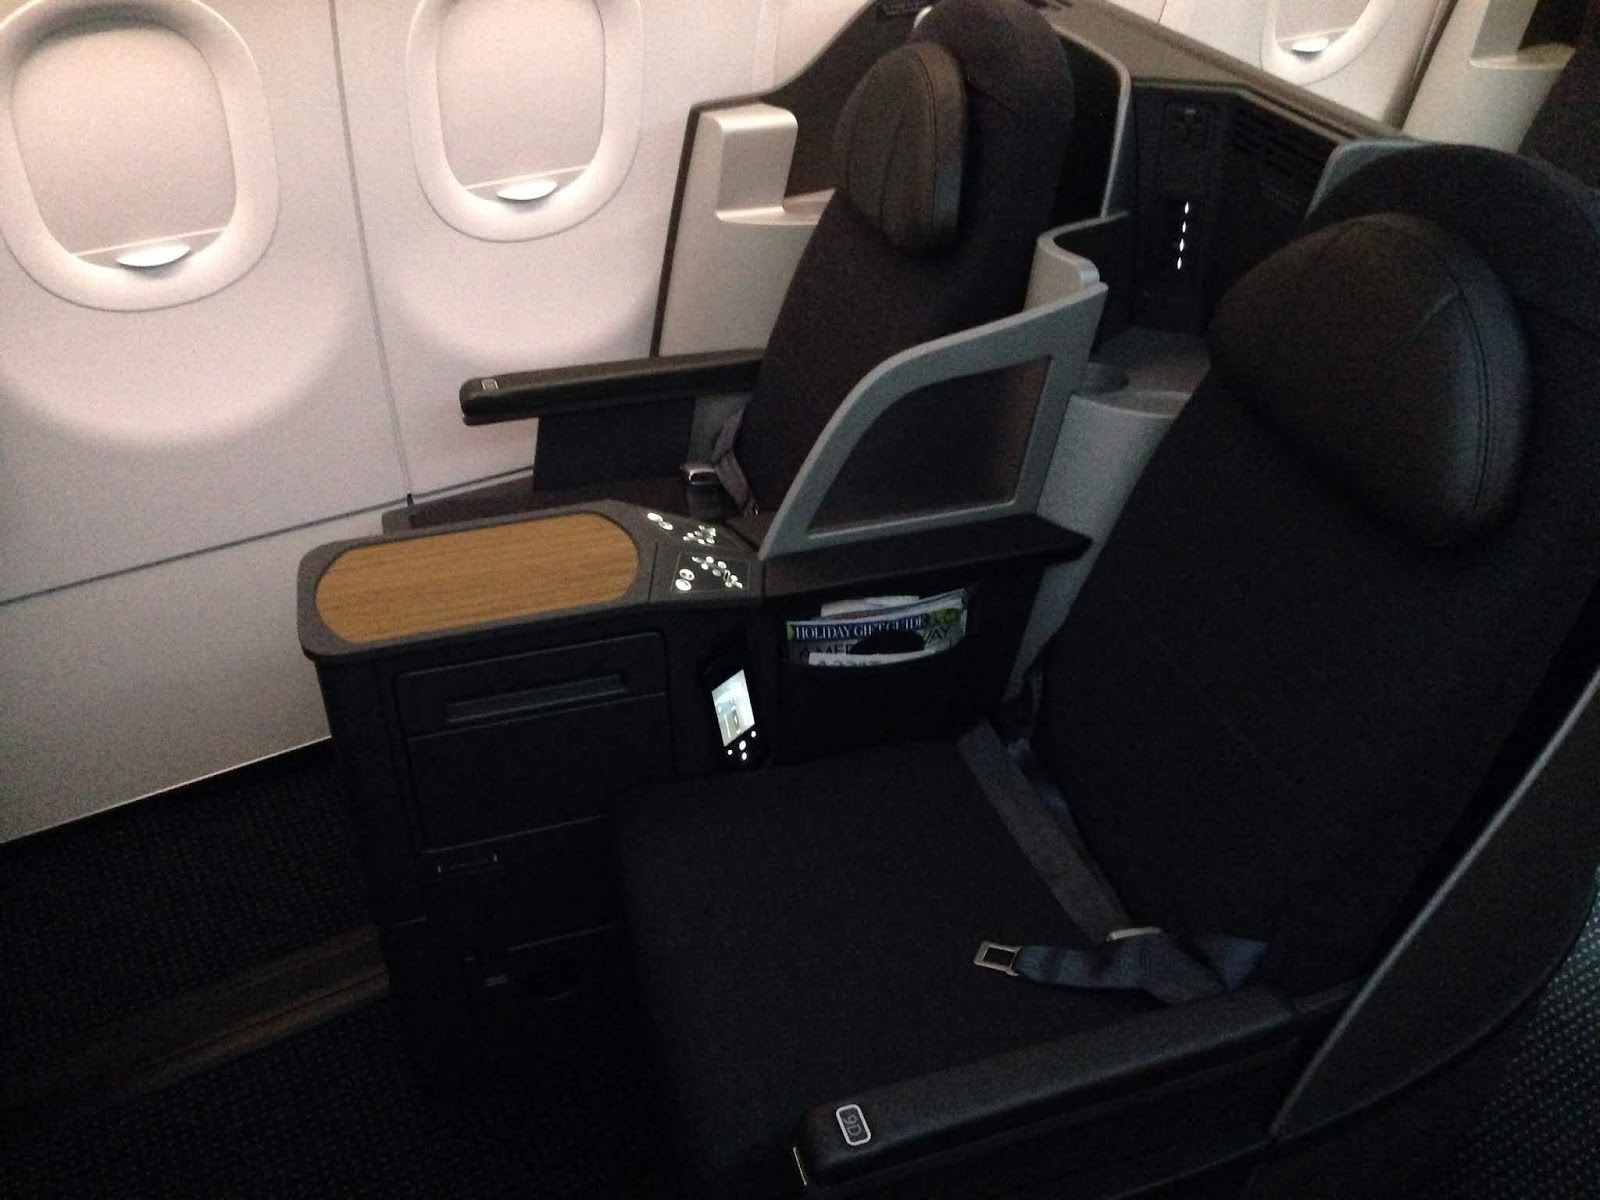 American Airlines Business Class Seats